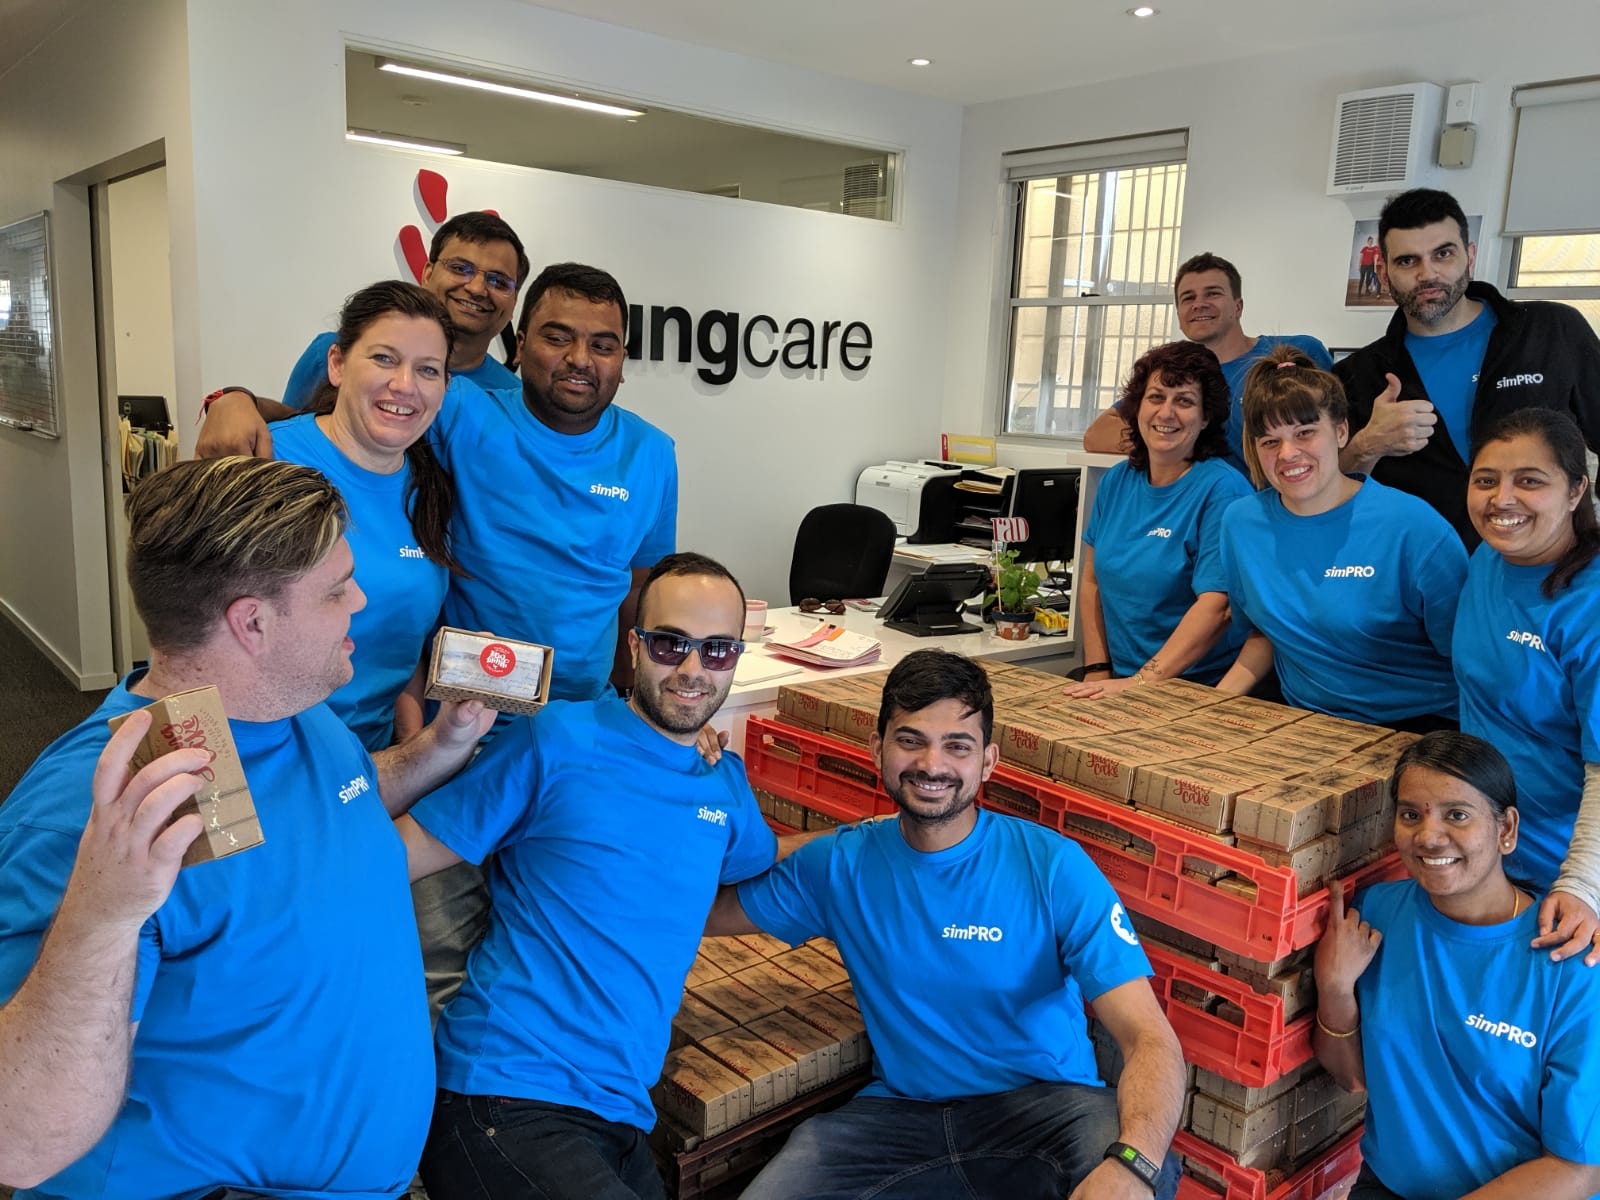 simPRO employees celebrating succes after wrapping cakes for Youngcare